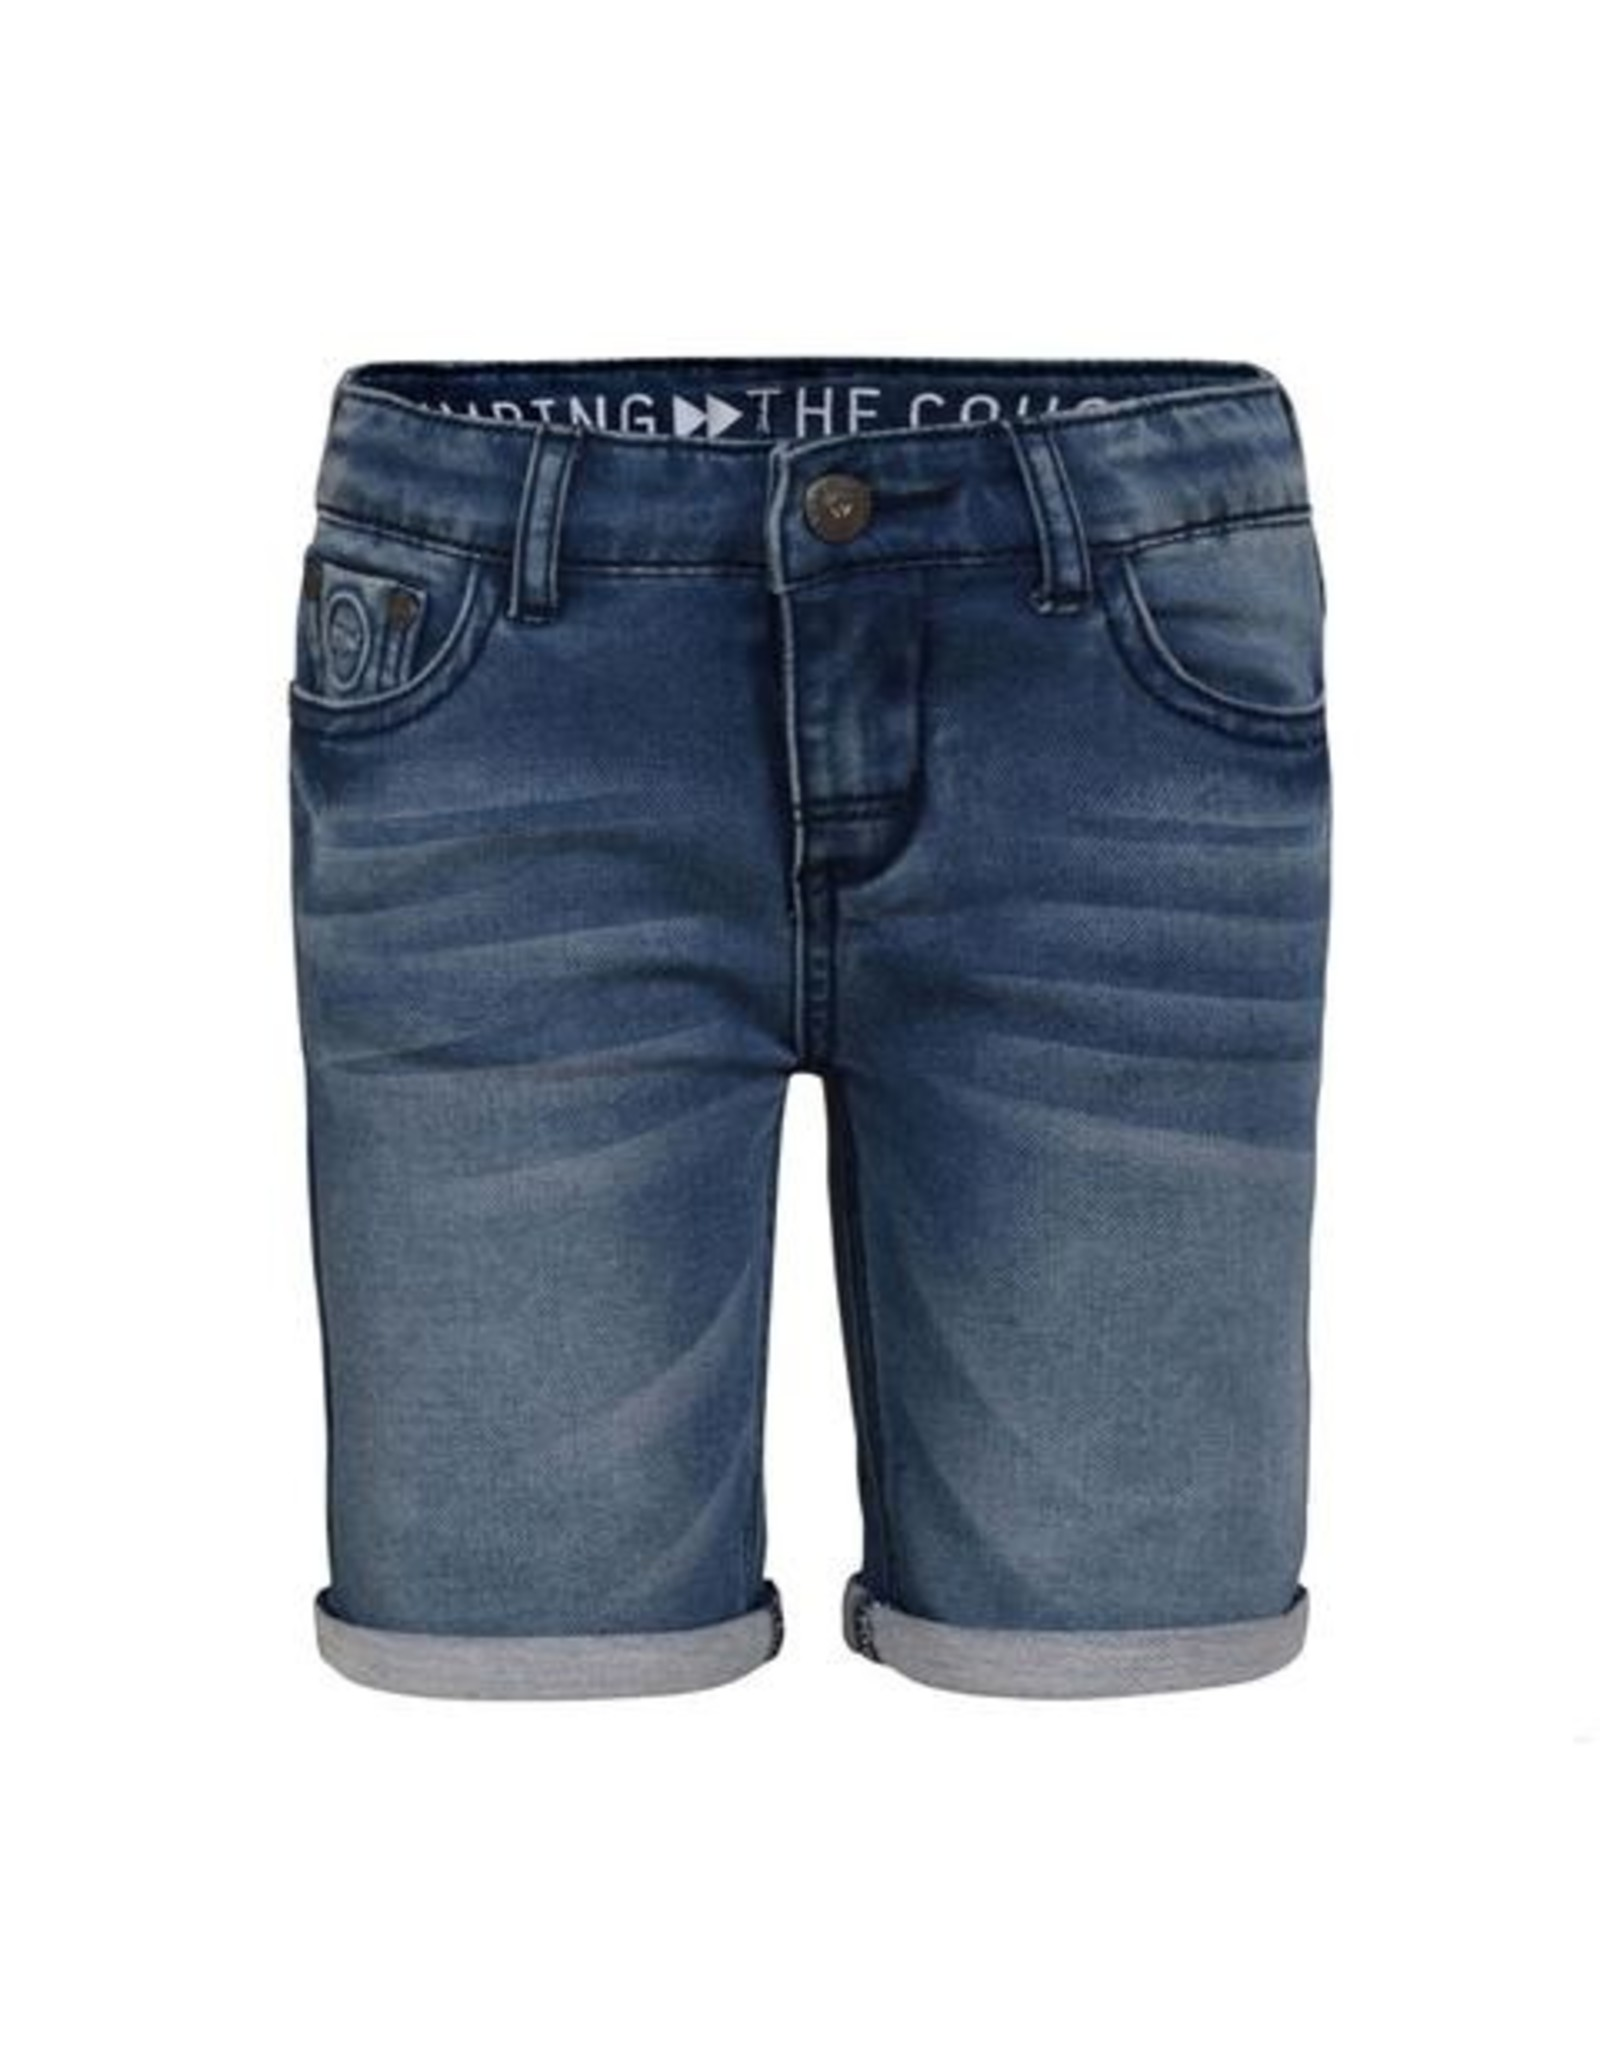 Jumping the Couch Short denim , DNM